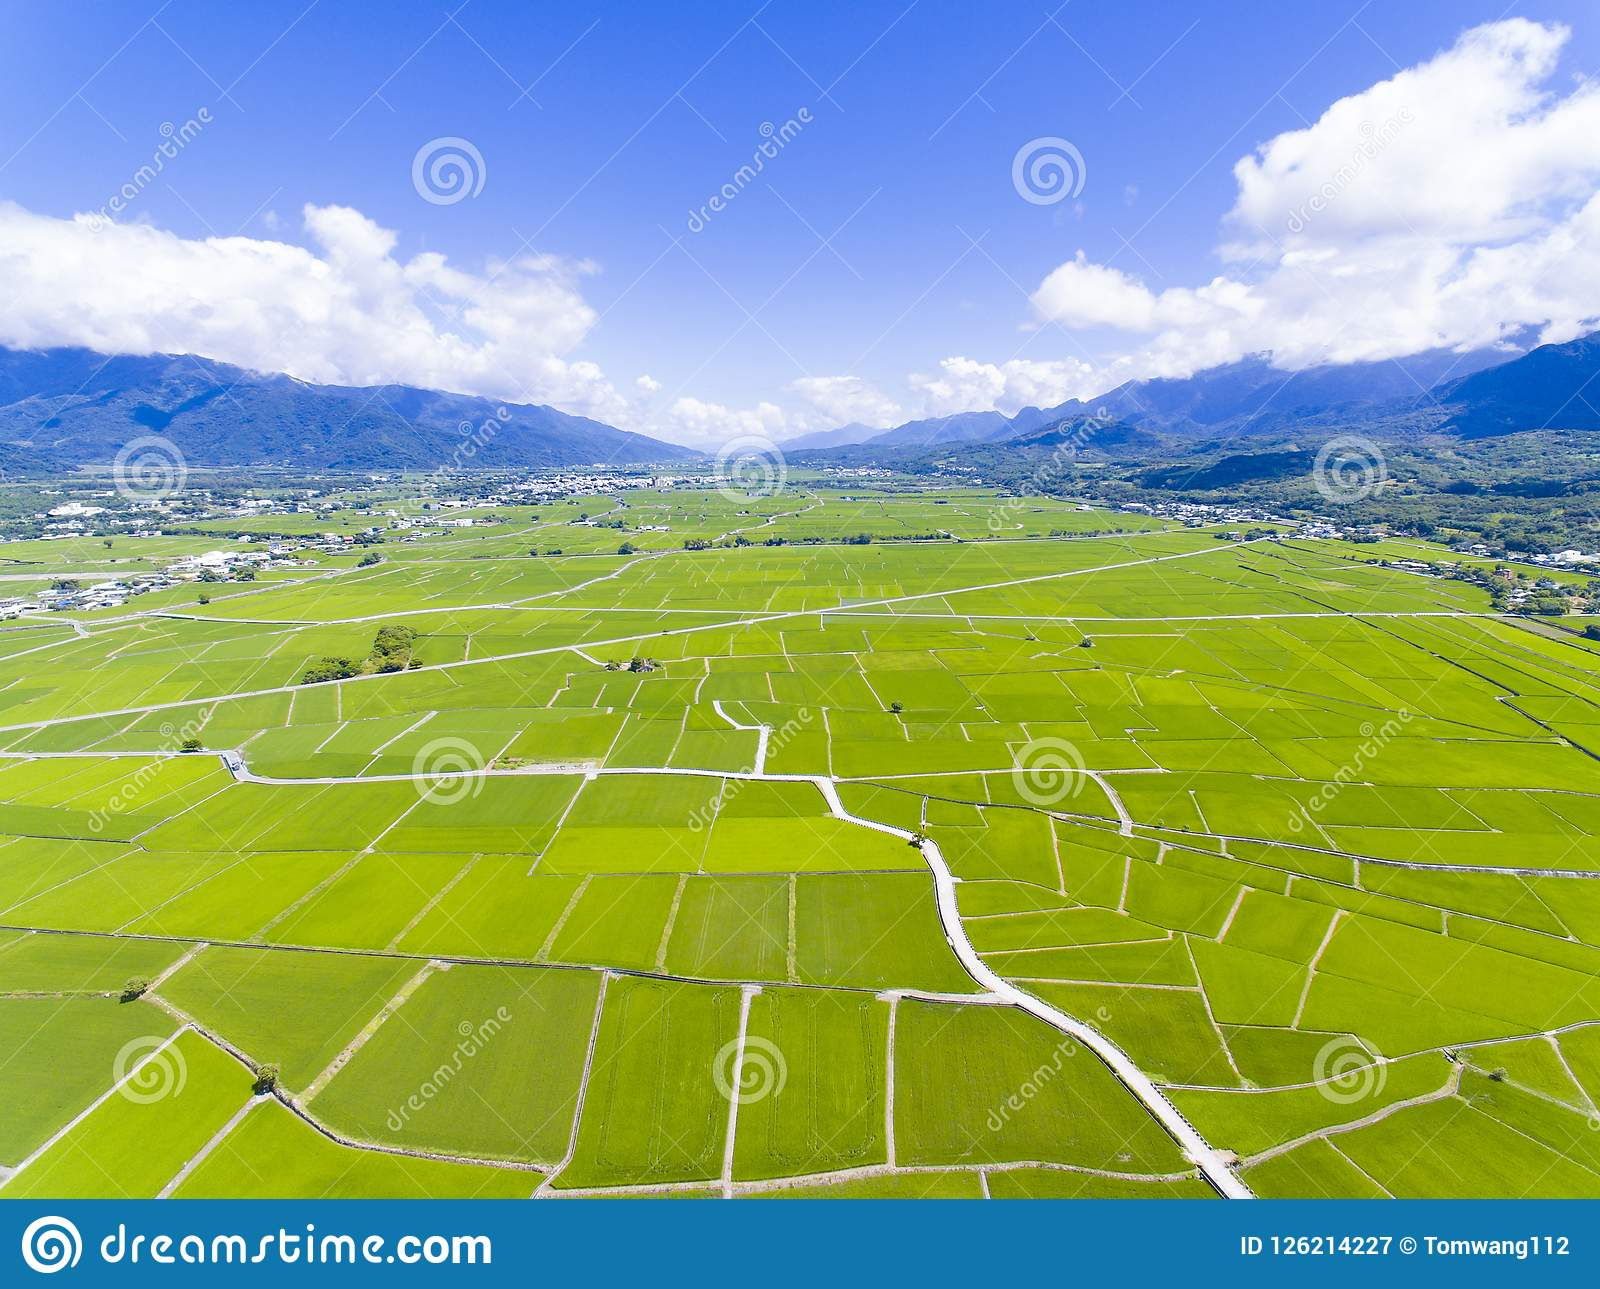 Aerial view of rice field valley. taiwan.